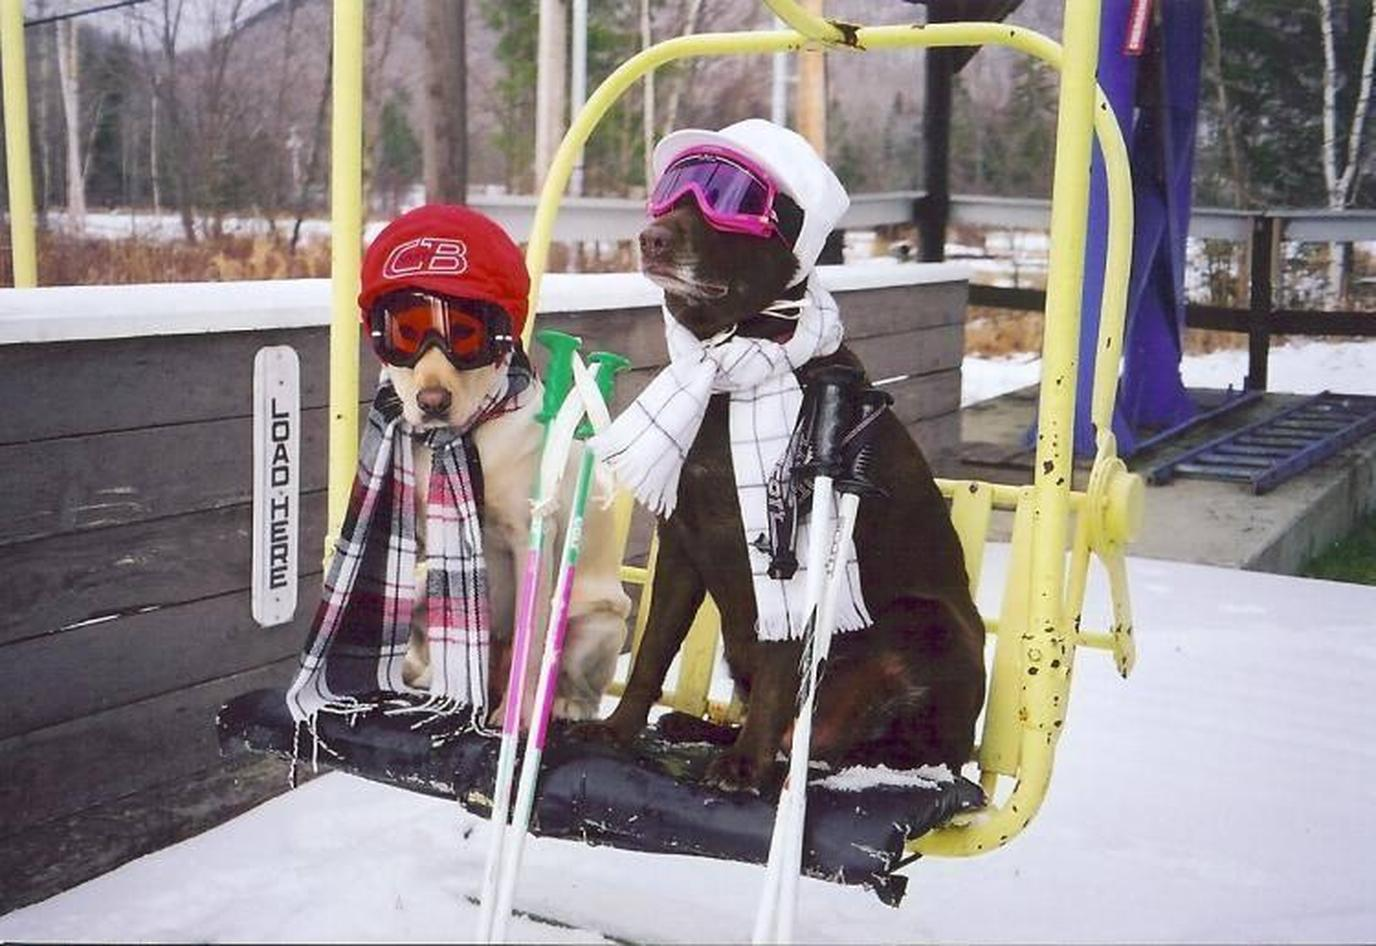 Two dogs on a ski lift in Vail, Colorado.